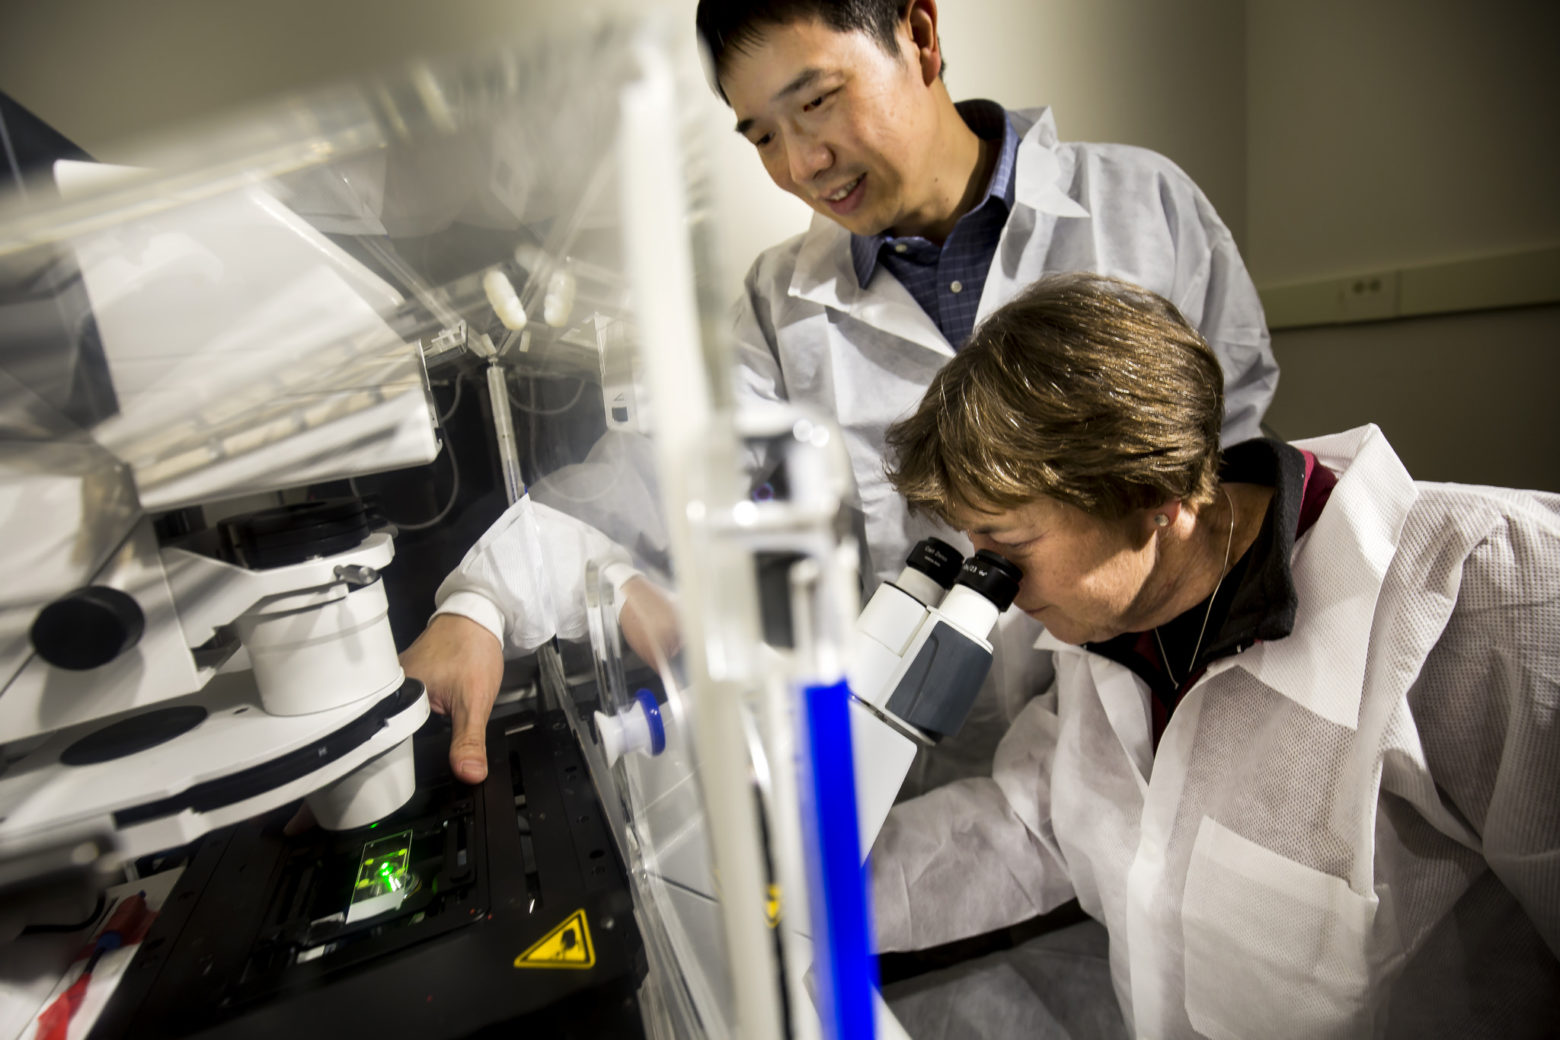 Deborah Gumucio, James Douglas Engel Collegiate Professor of Cell and Developmental Biology, and Jianping Fu, Associate Professor of Mechanical Engineering, discuss microscopic results of cysts they are analyzing from a cell culture. Photo: Joseph Xu, Michigan Engineering.